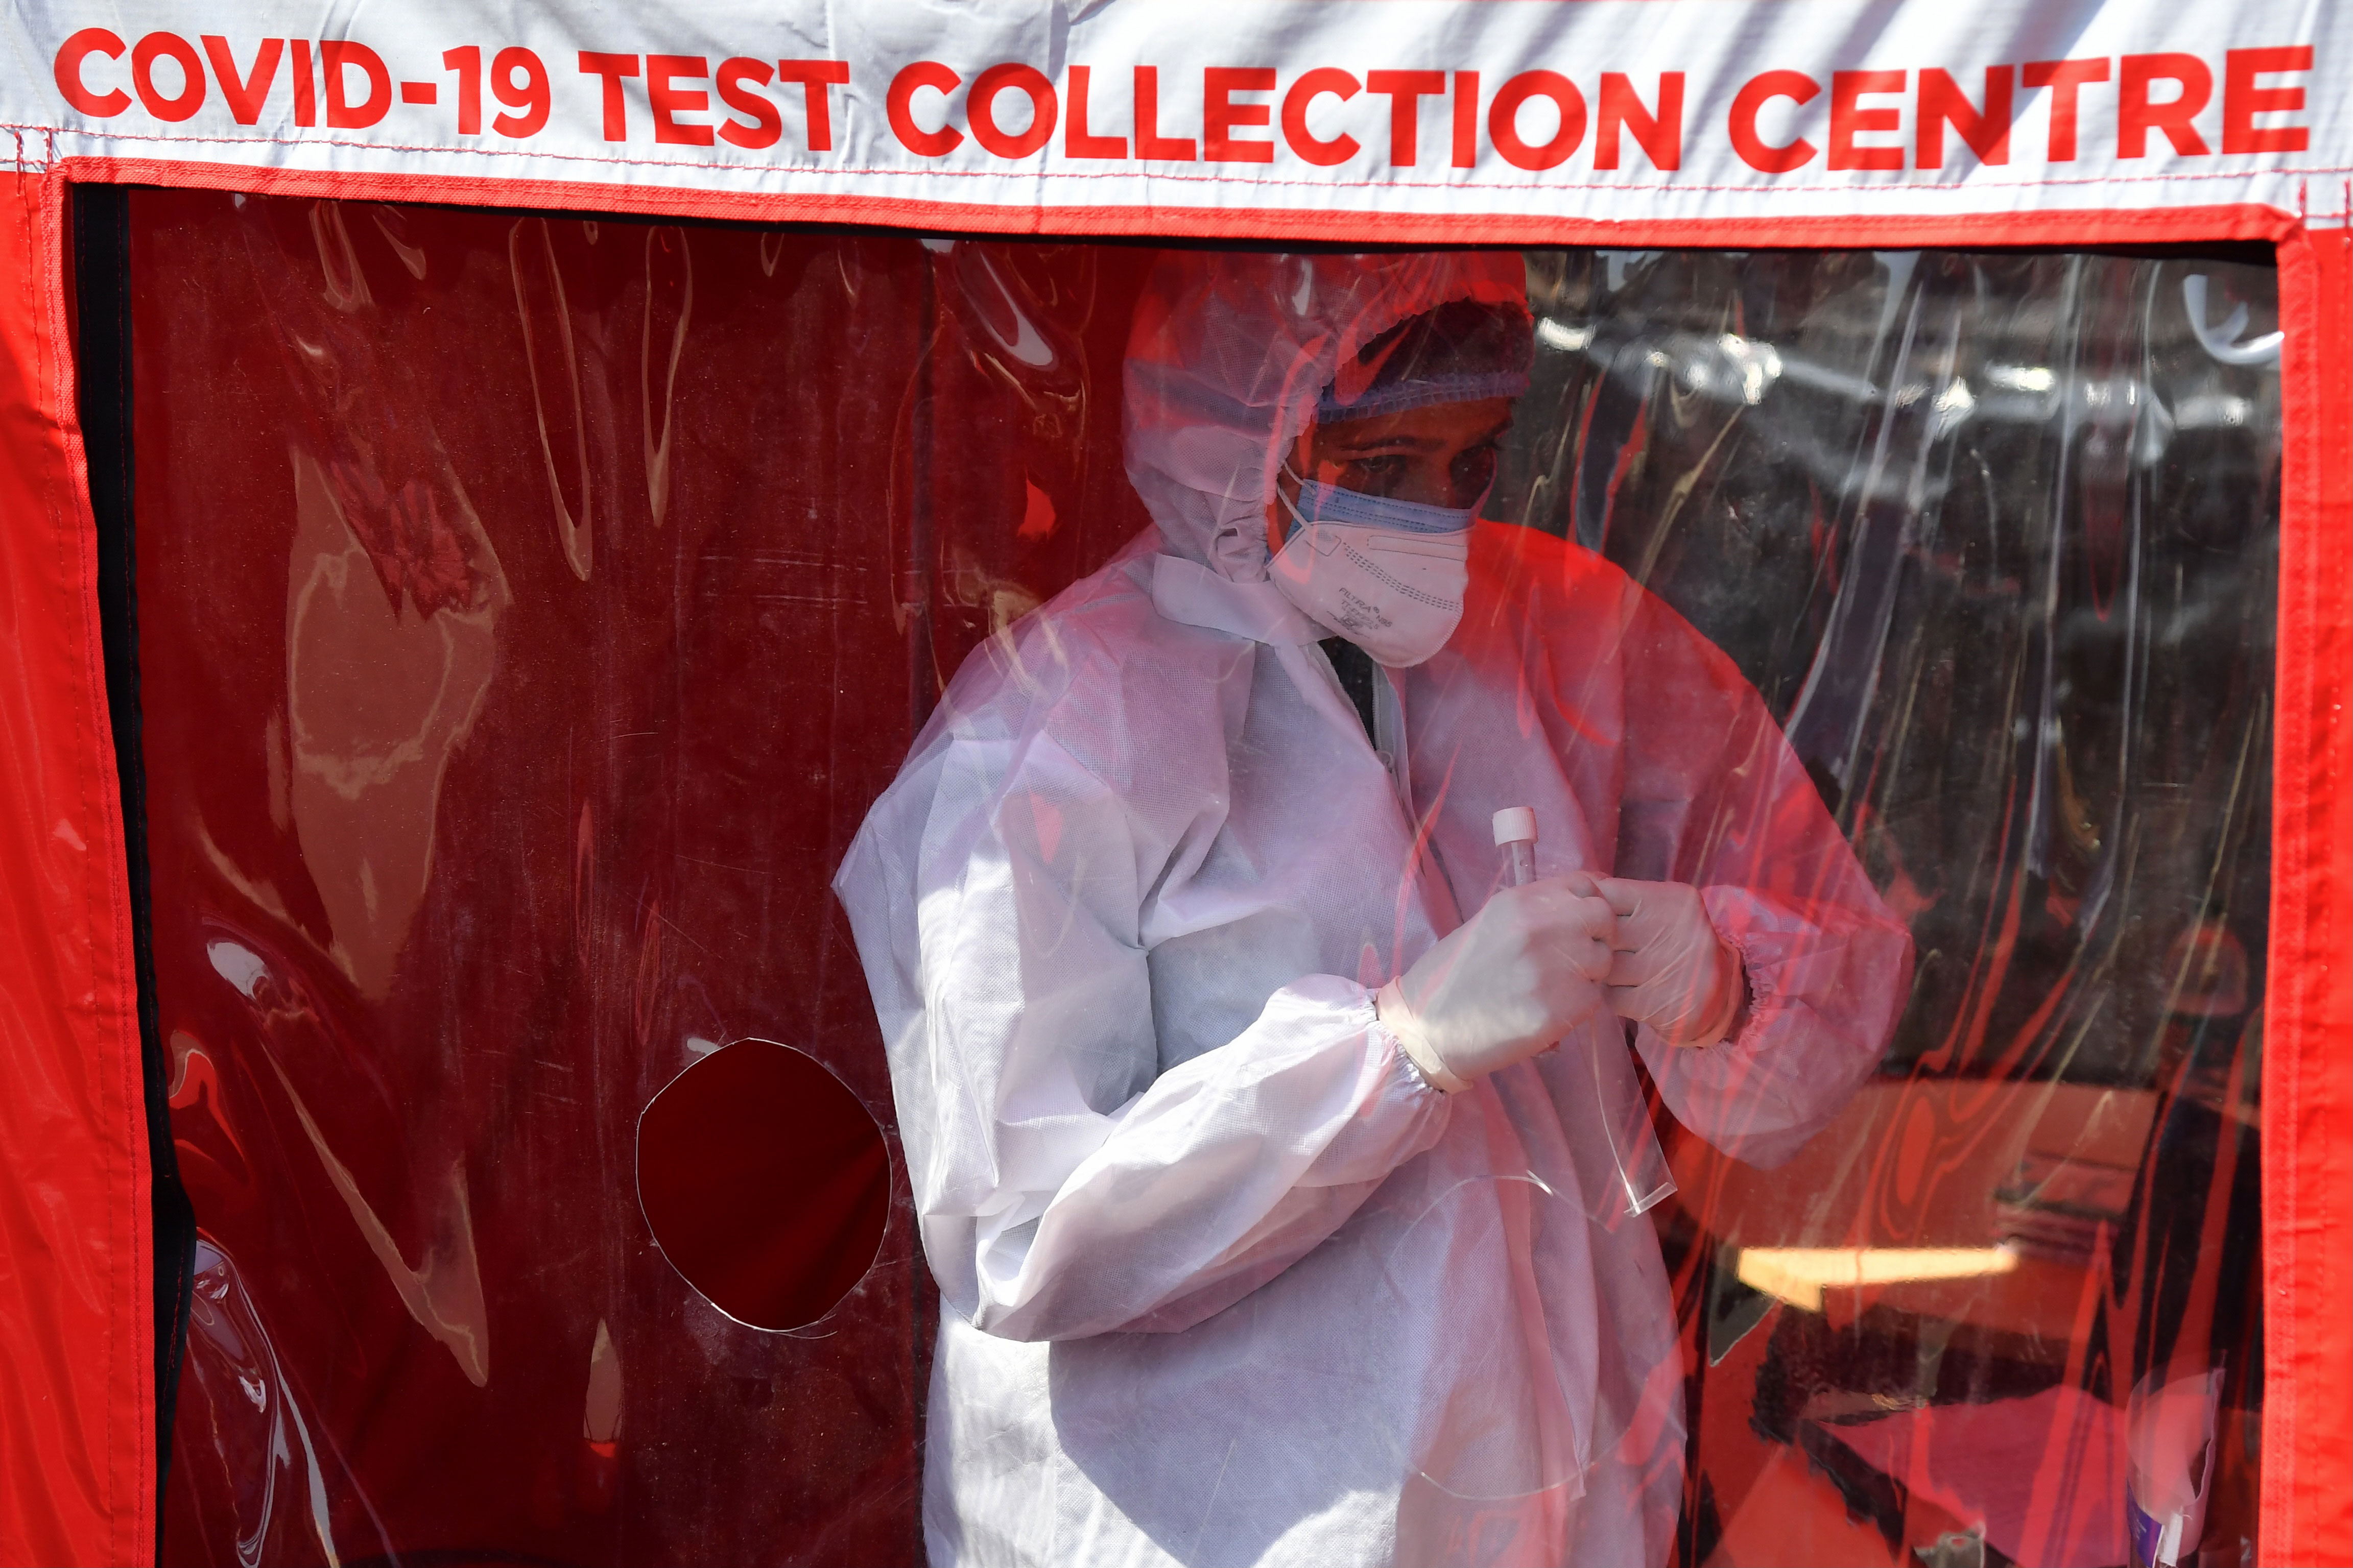 A health worker prepares to take swab samples at a mobile Covid-19 testing center in Mumbai, India, on February 11.